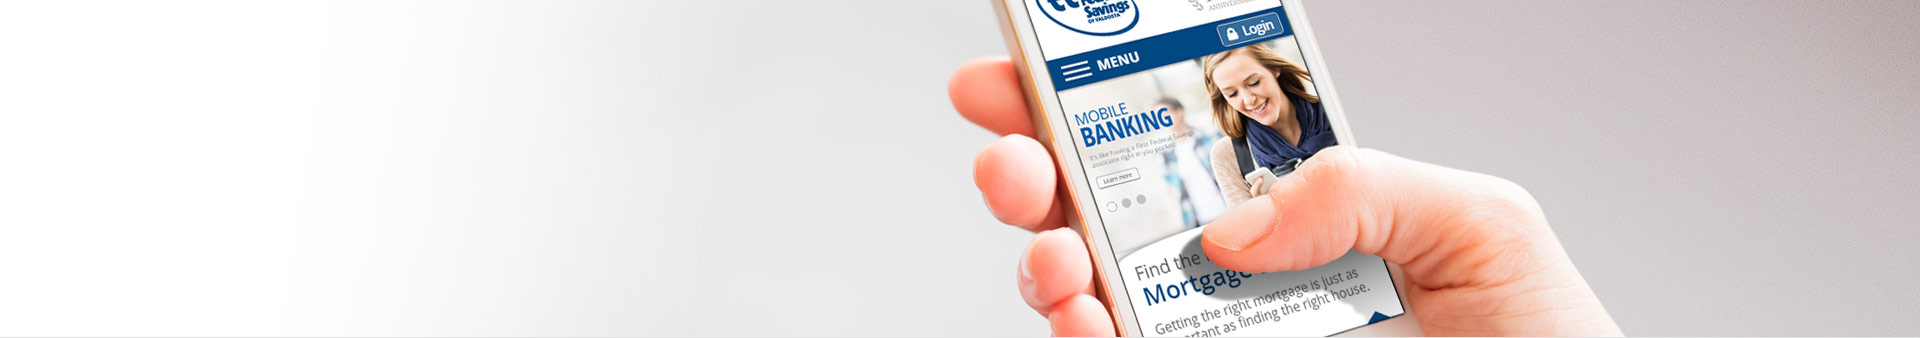 subbanner-mobile-banking